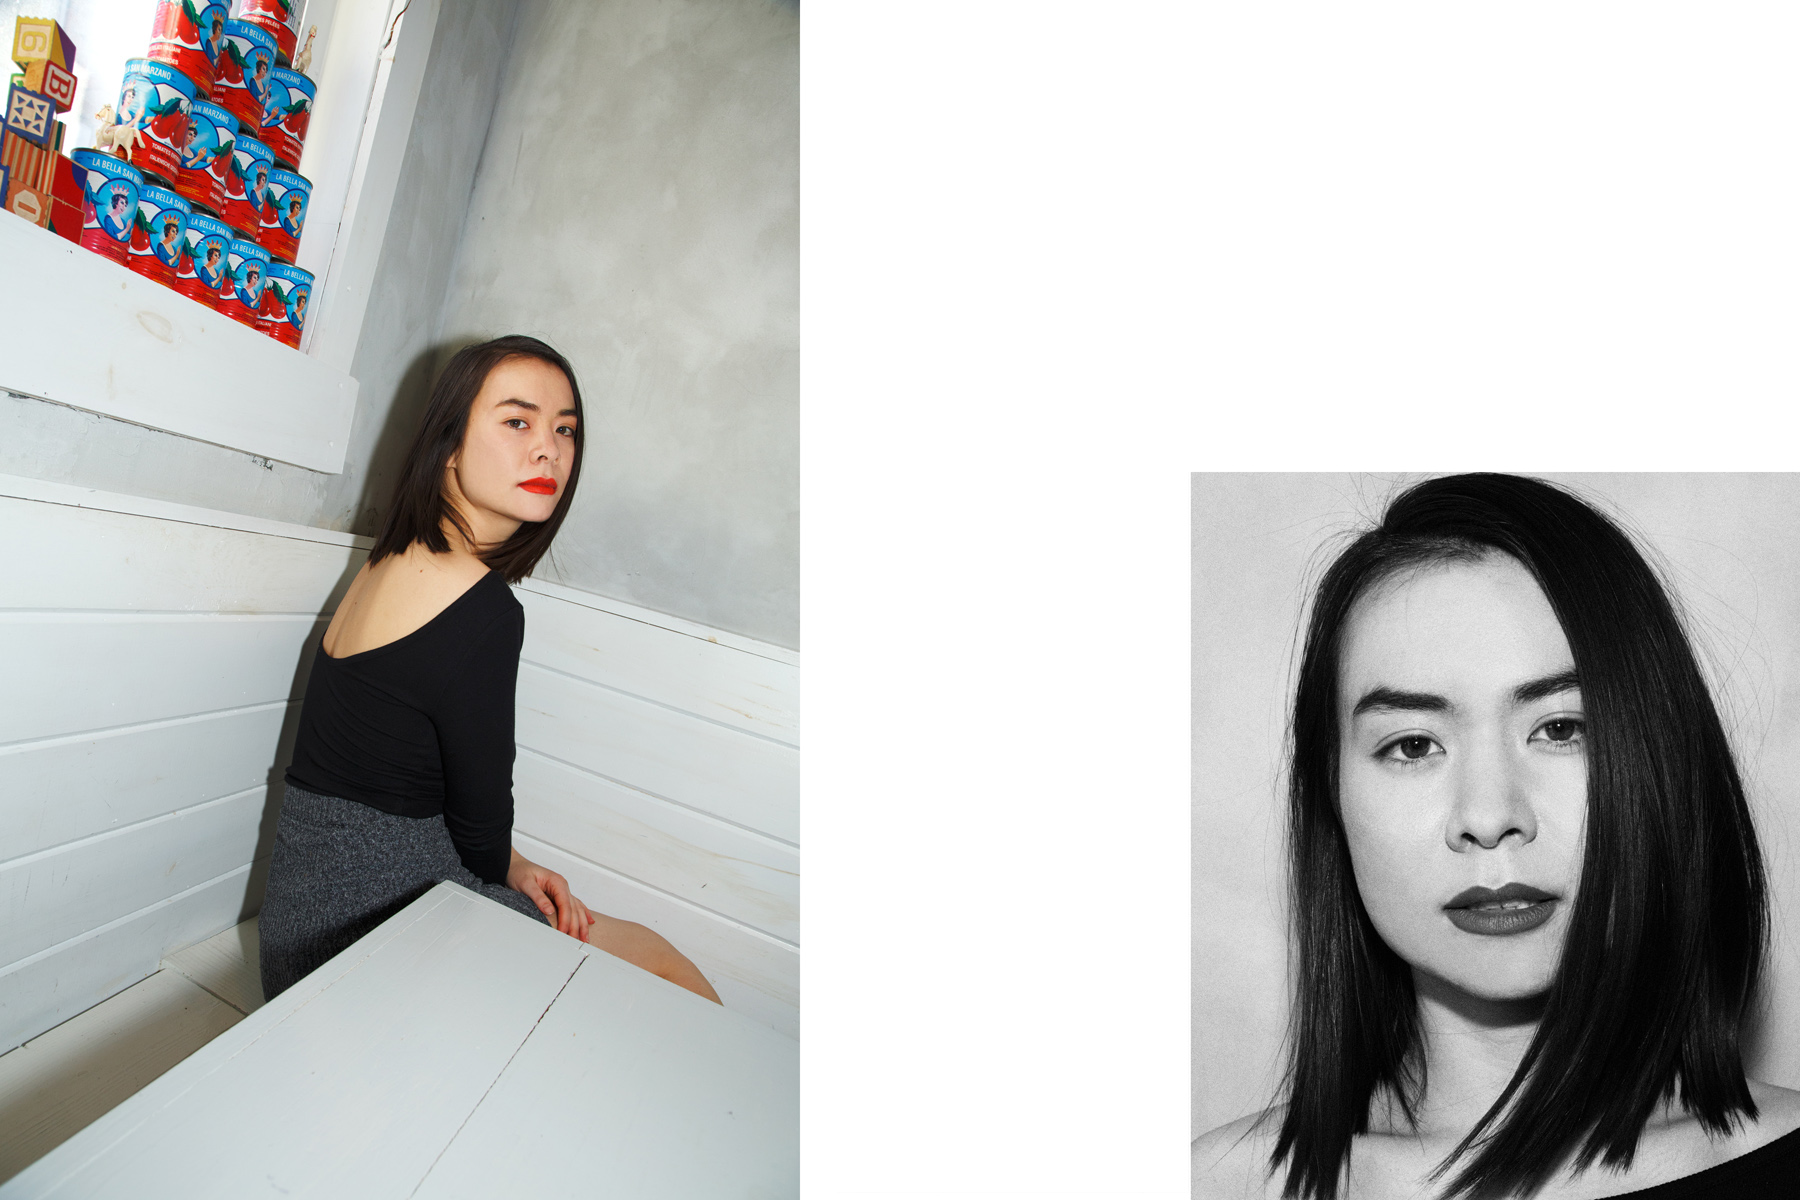 KATE OWEN | MITSKI